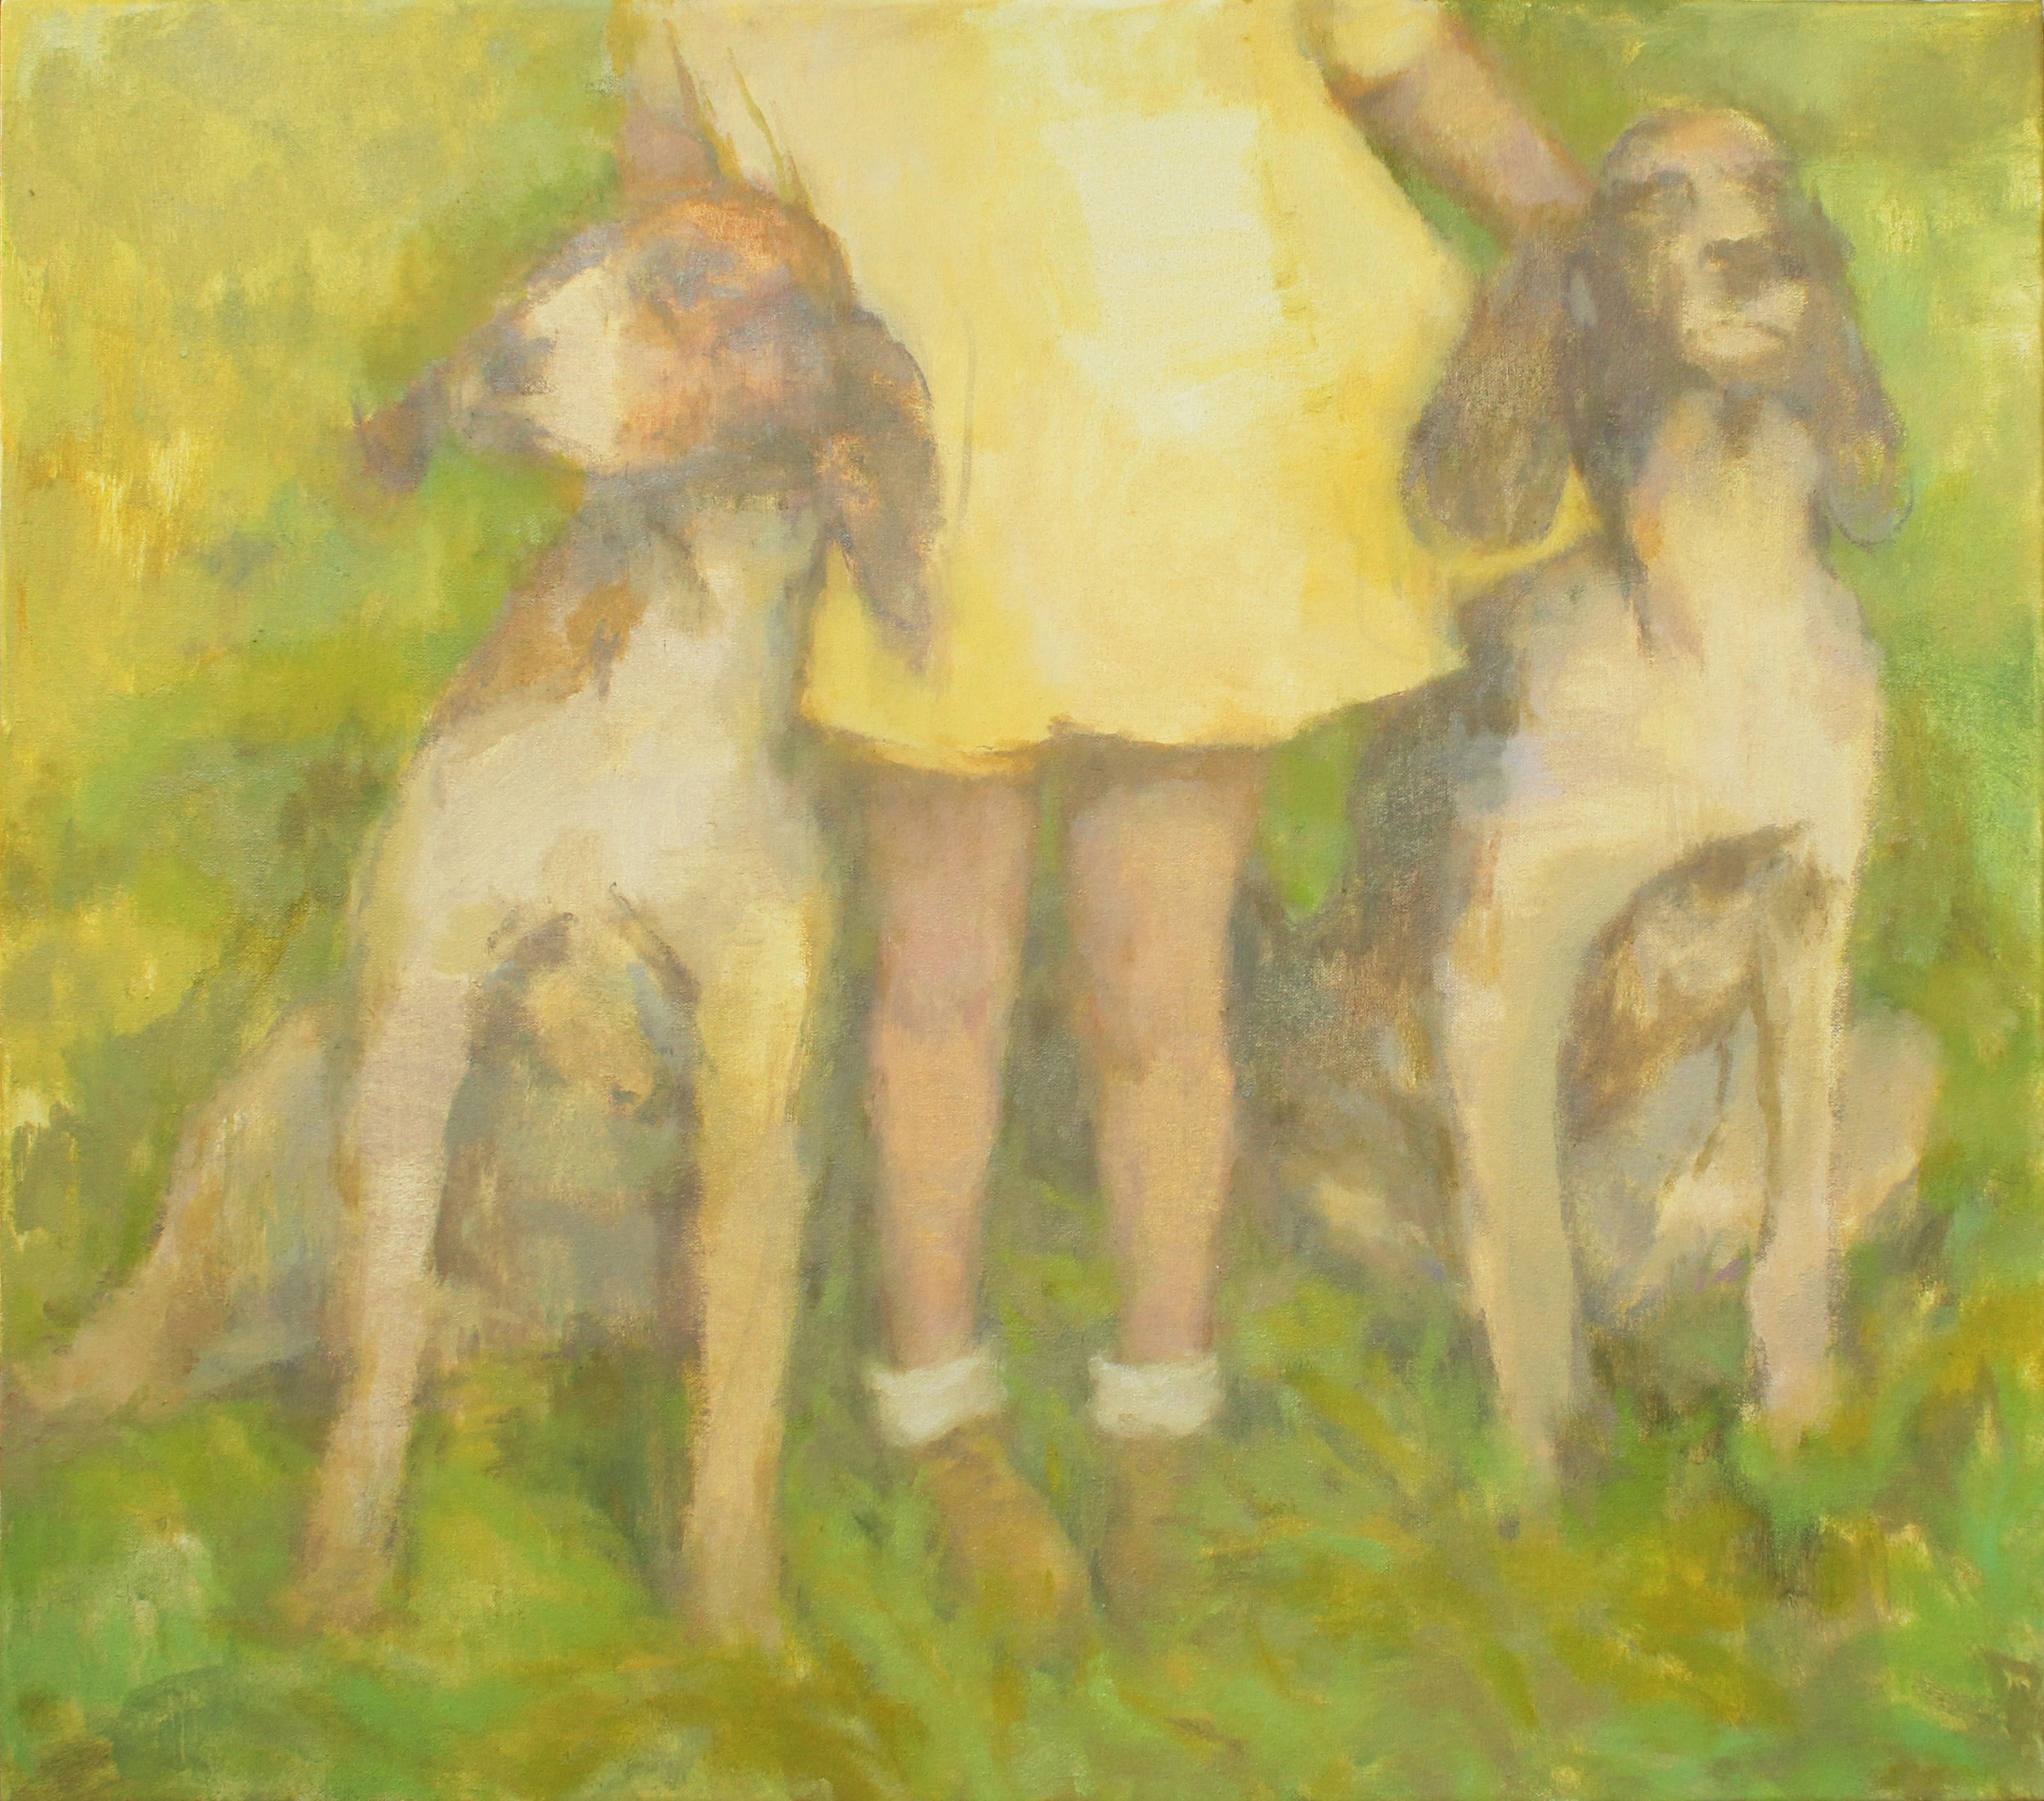 "Yellow Dress, Tally-Ho  oil on canvas 24x28"" 2019   purchase original"